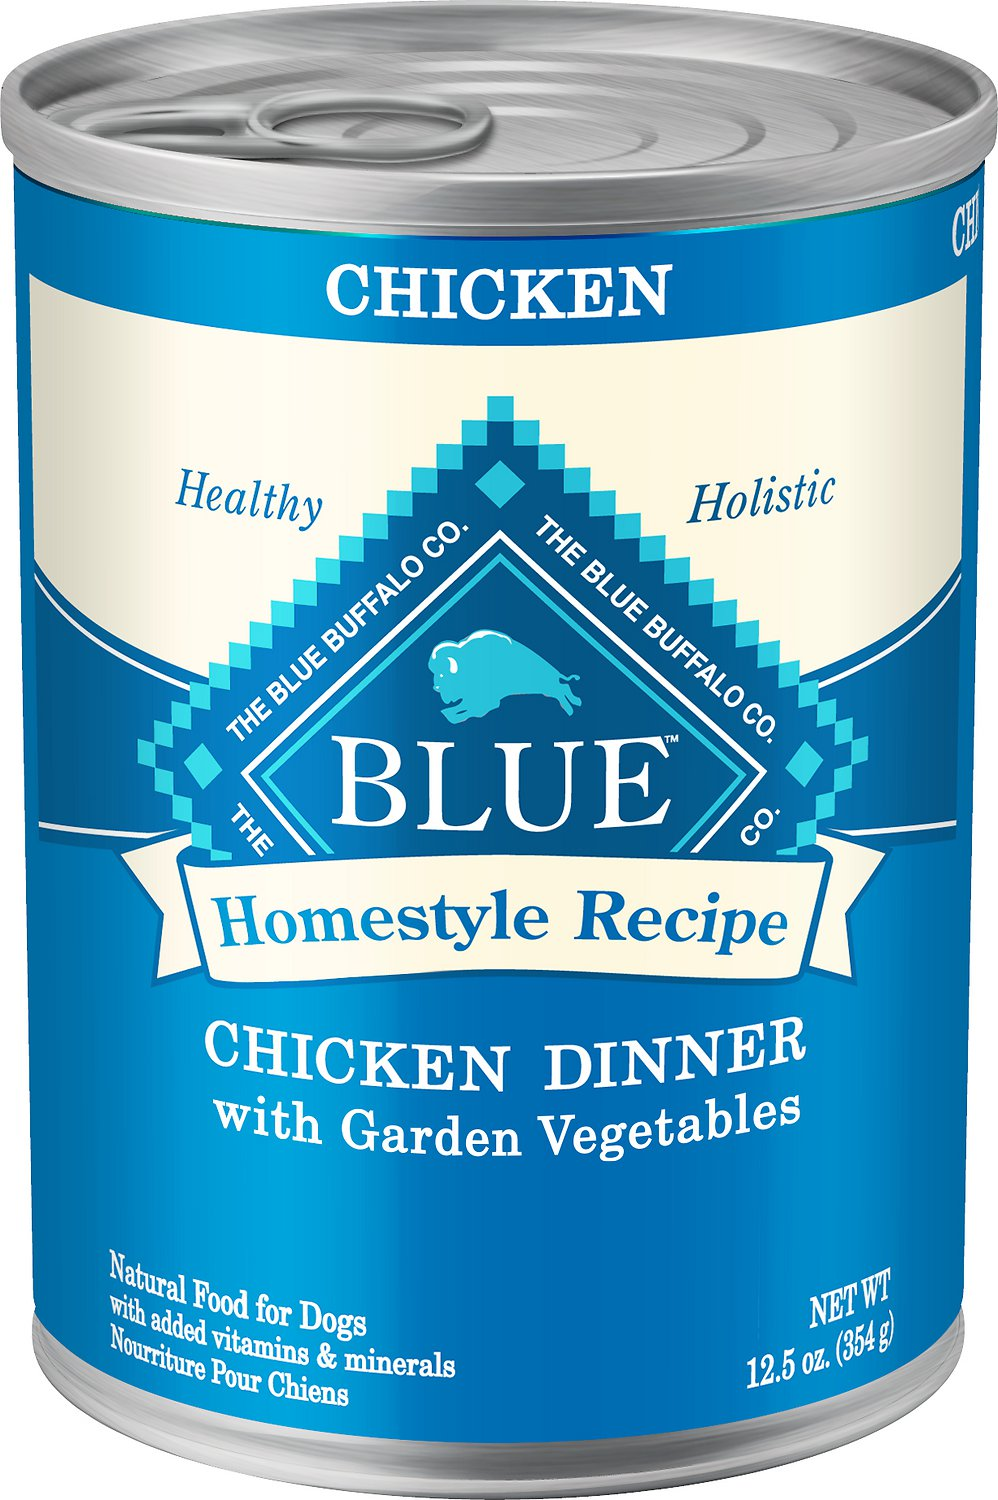 Blue Buffalo Homestyle Recipe Chicken Dinner with Garden Vegetables Grain-Free Canned Dog Food Image